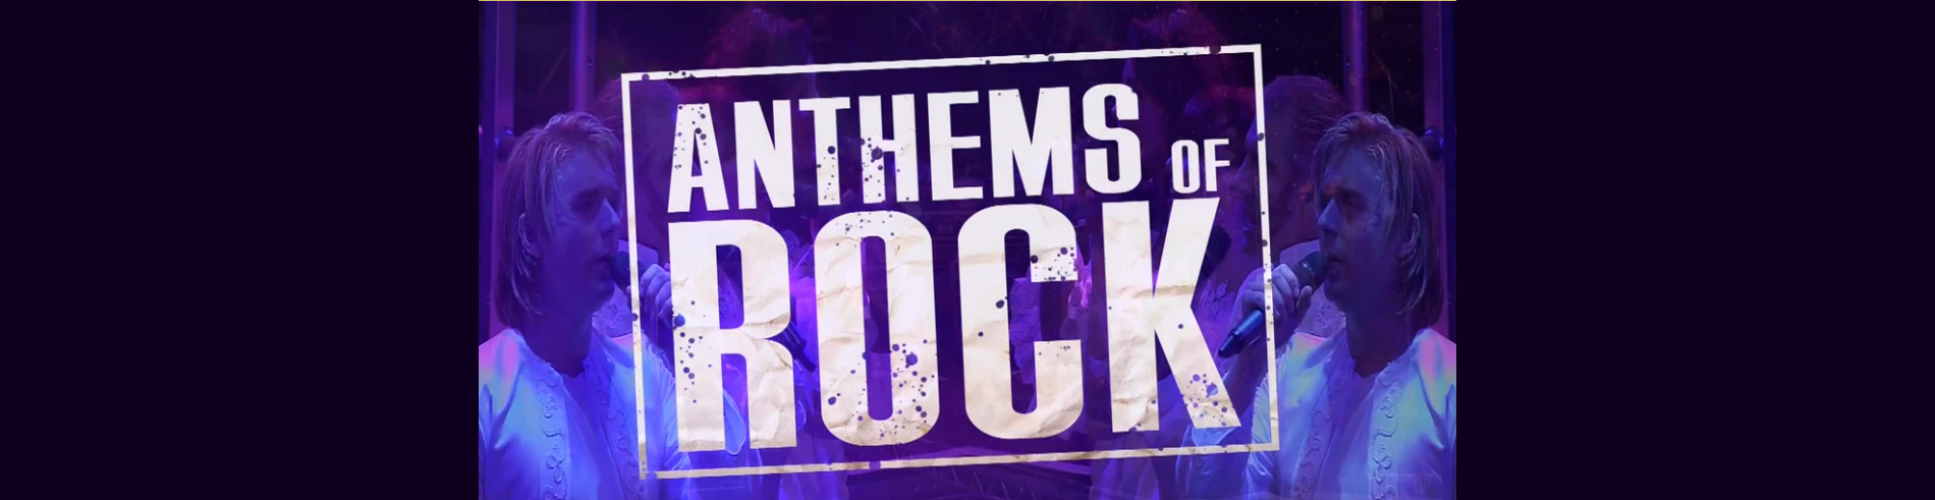 King's Castle Theatre - Anthems of Rock